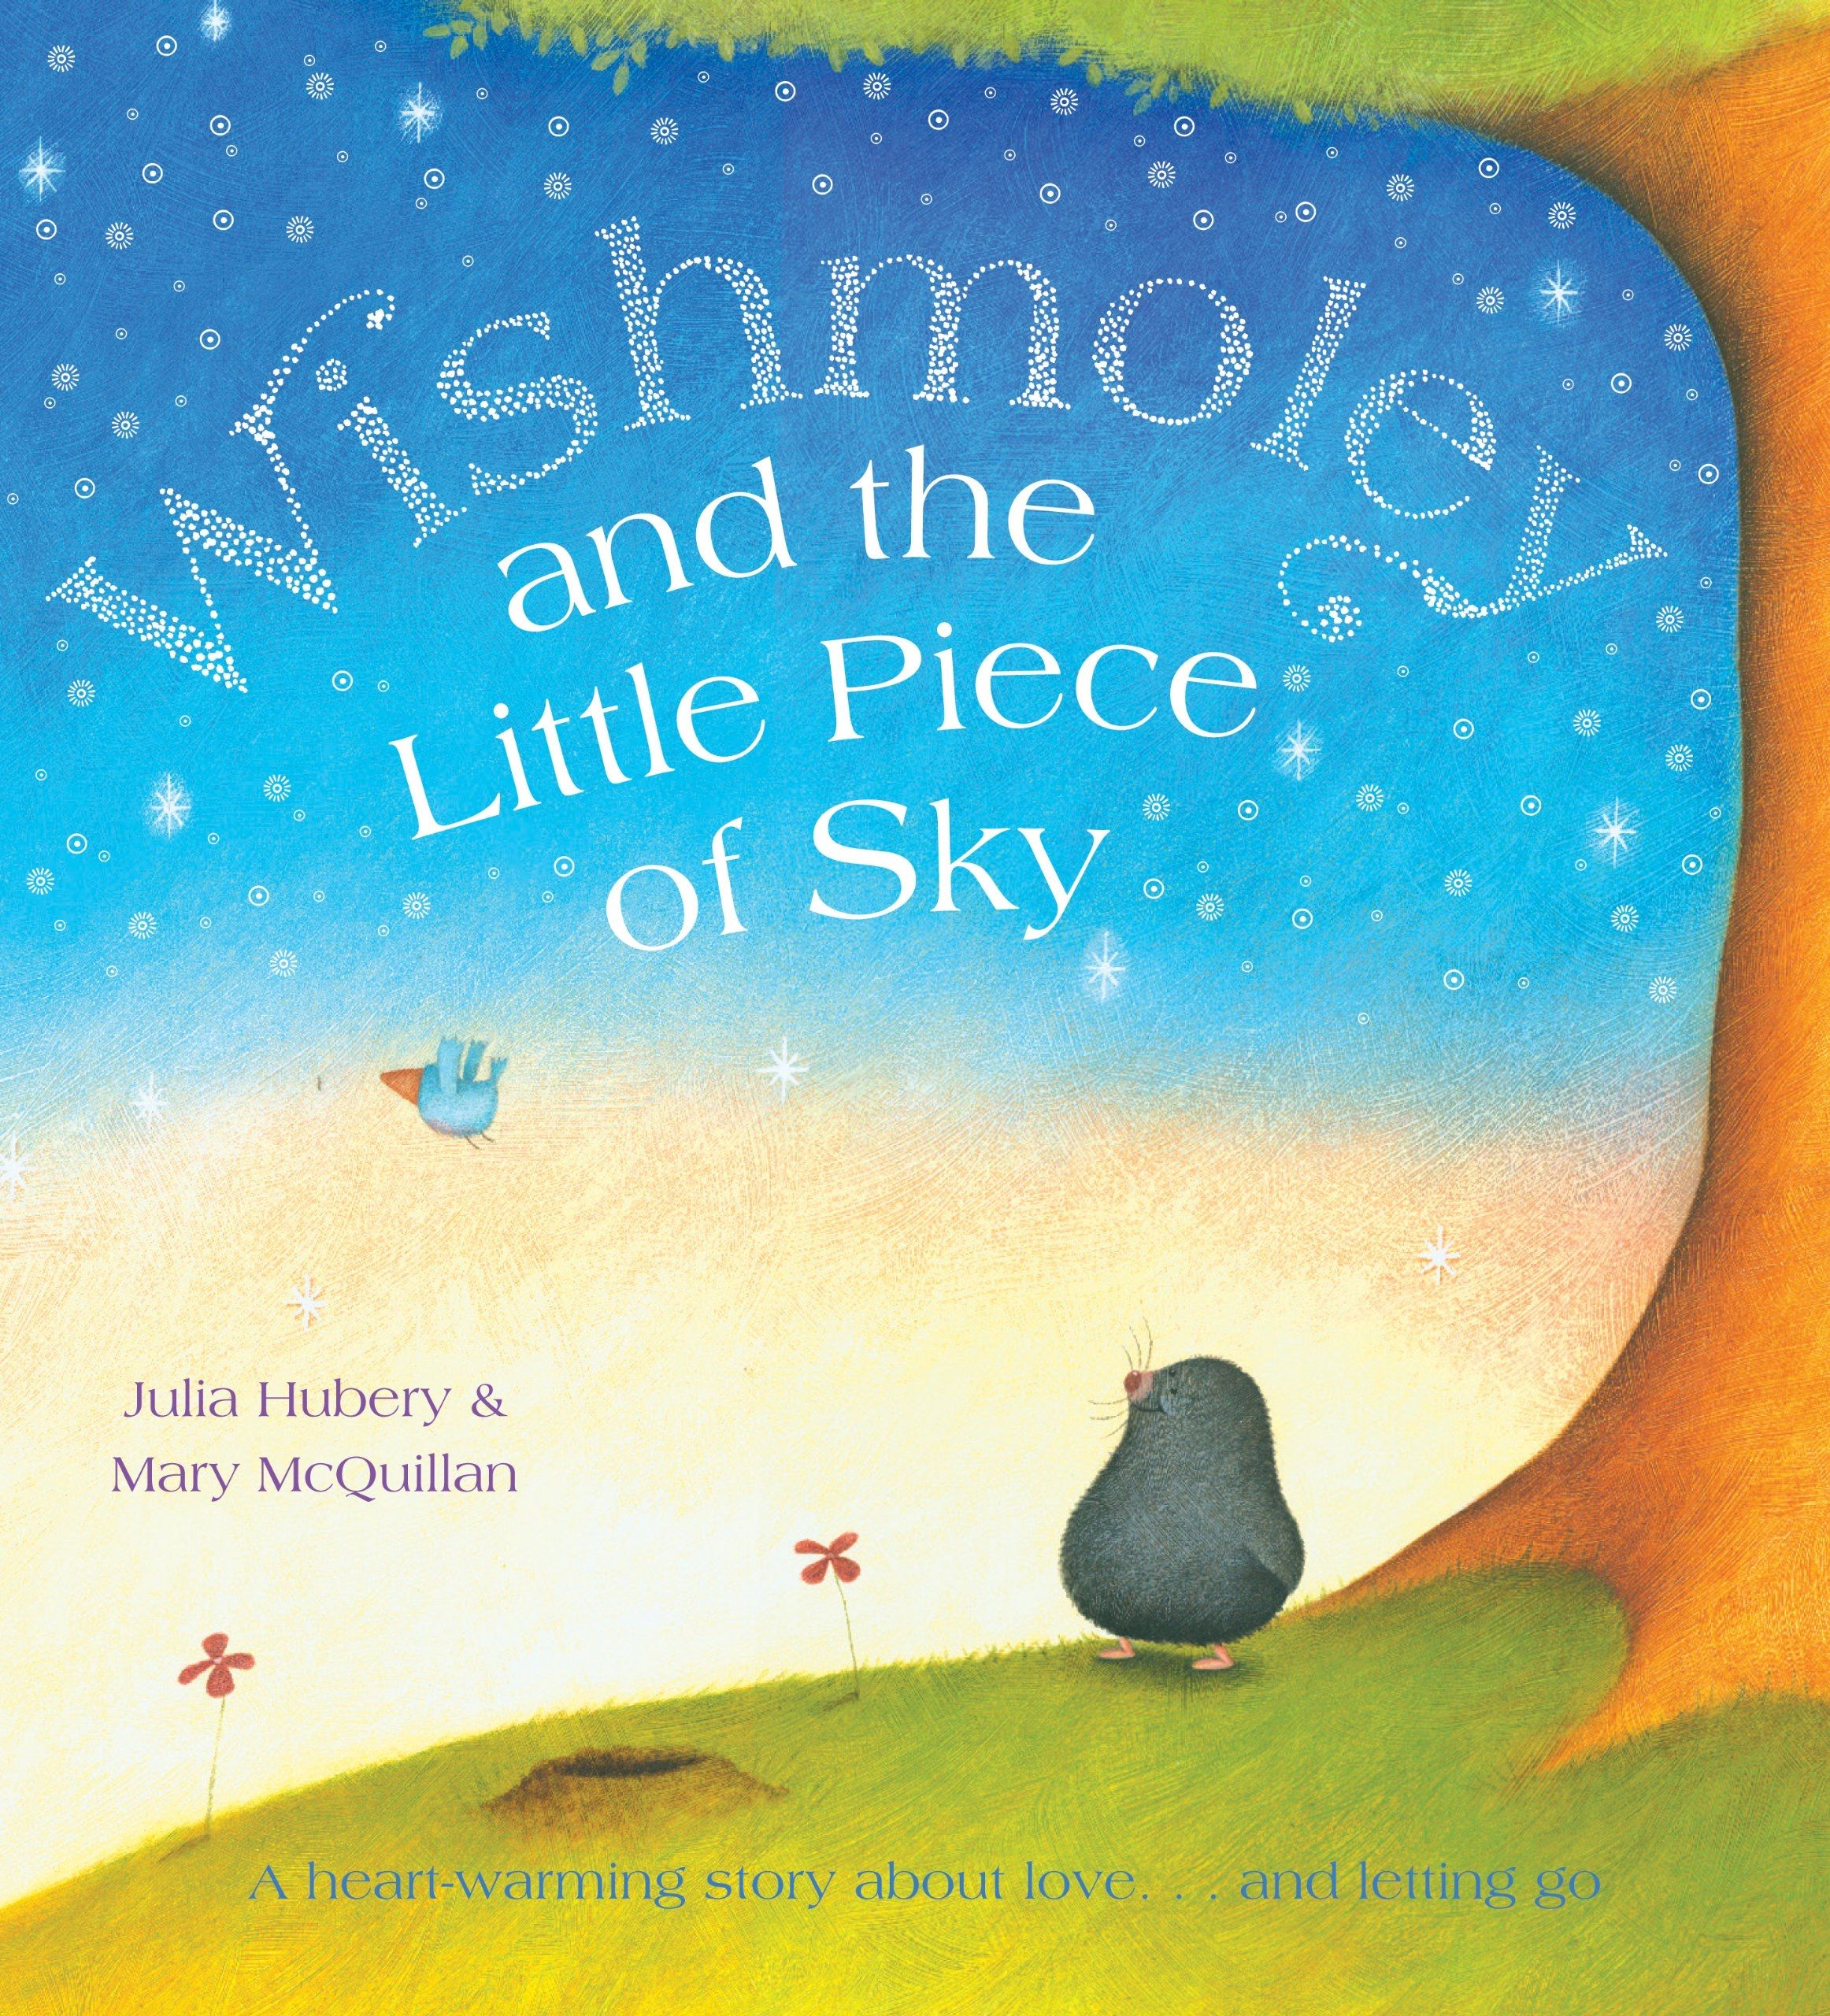 Pin By Katherine Halligan On My Books In 2020 Picture Book Kids Library Sky